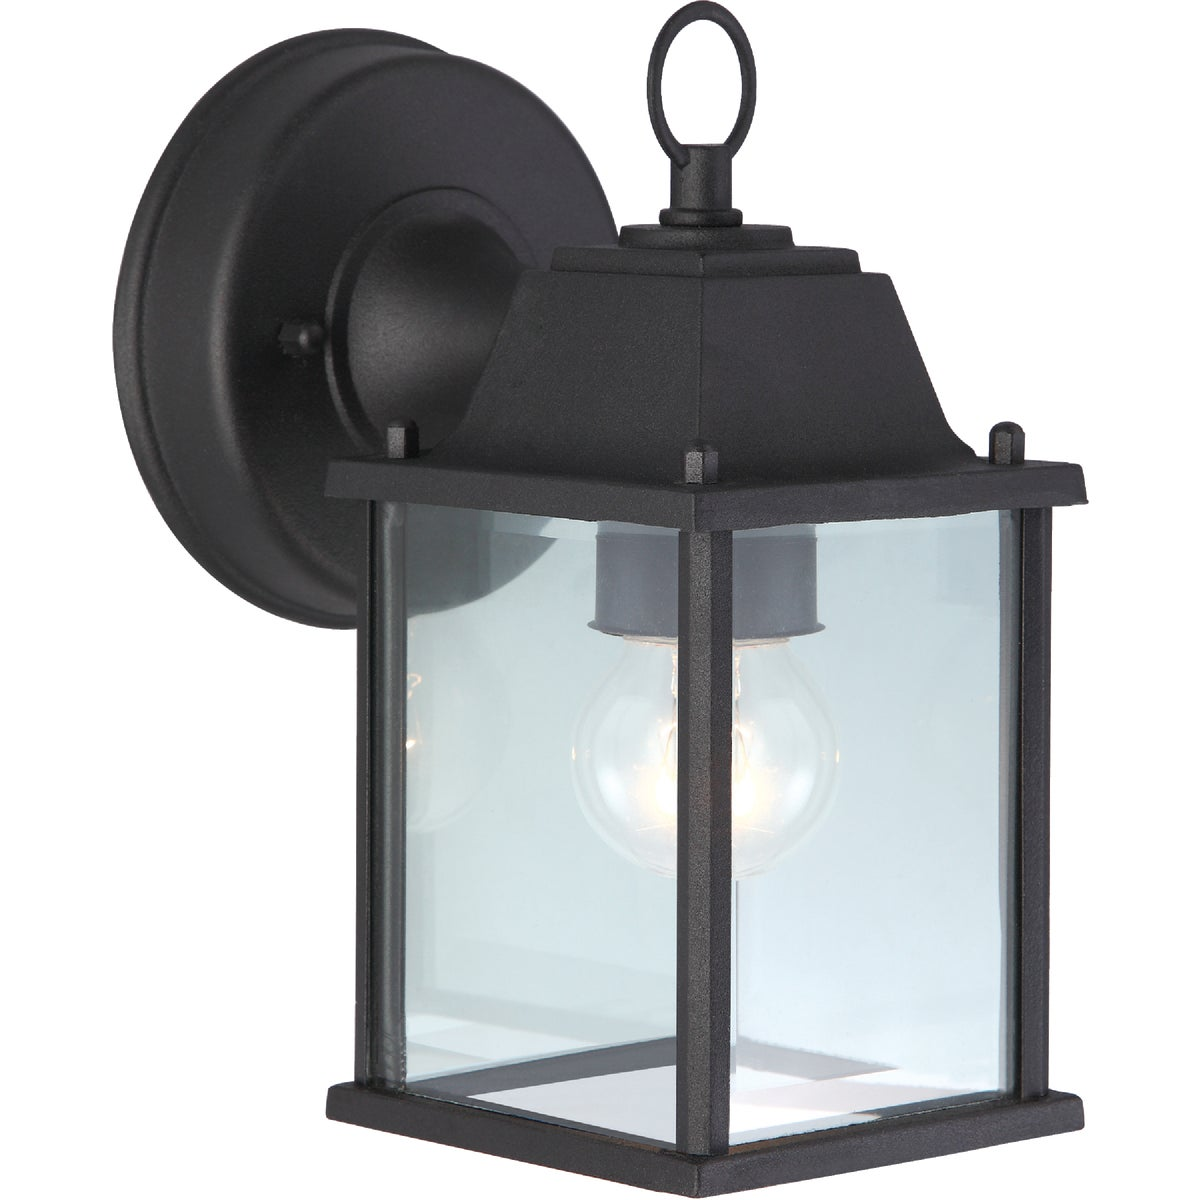 BLK OUTDOOR WALL FIXTURE - IOL3BK by Canarm Gs